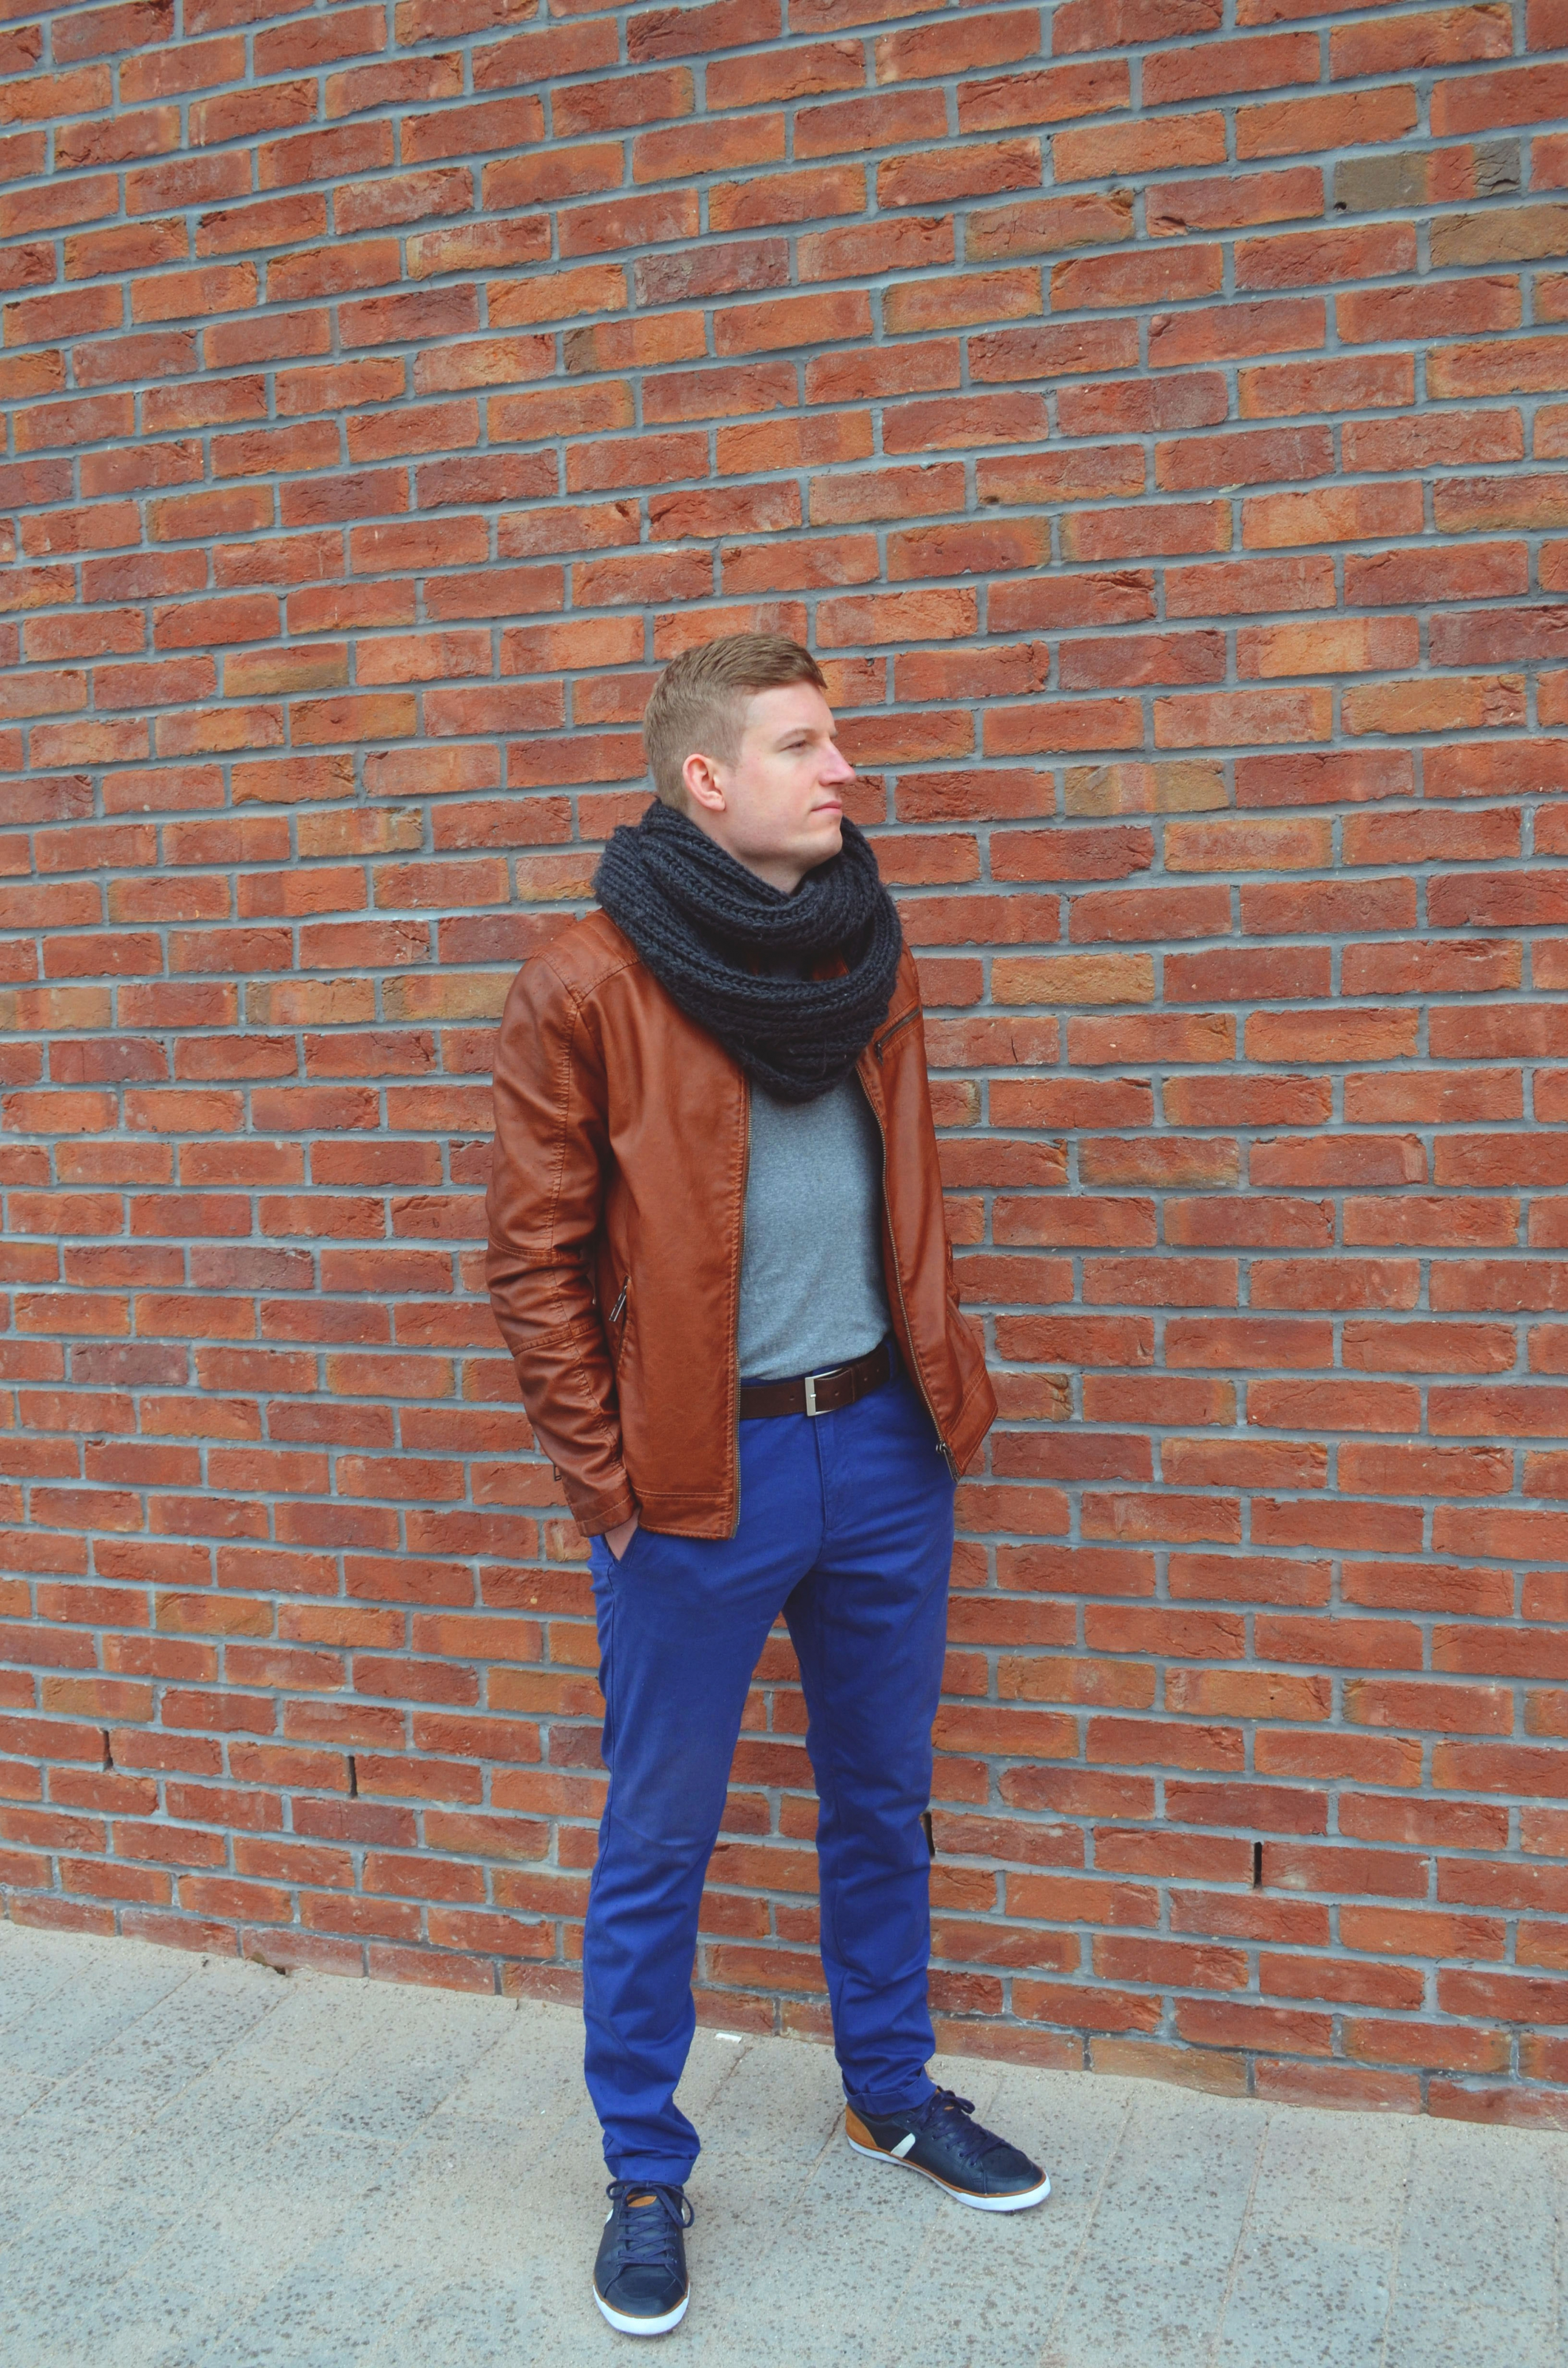 Leather jacket and navy pants!